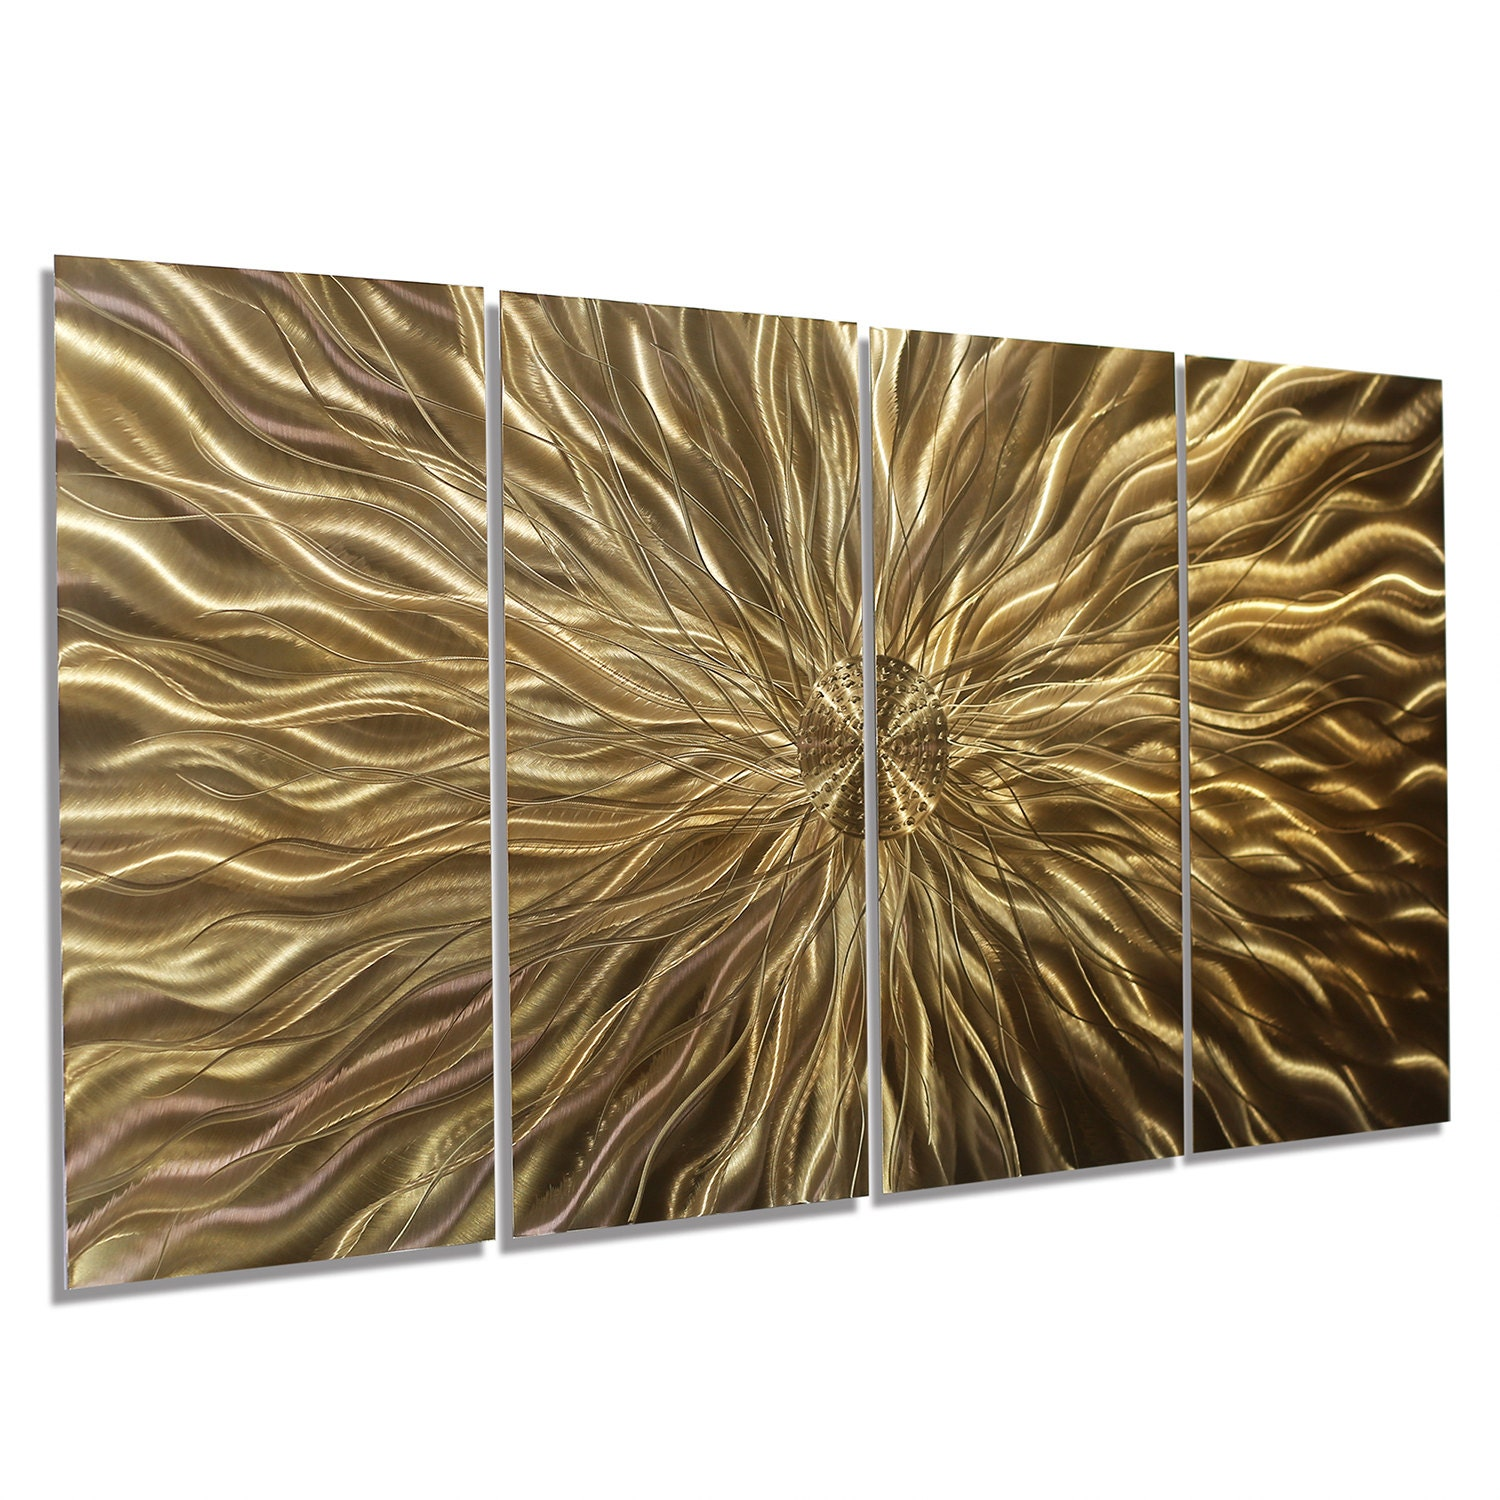 Copper metal wall art contemporary painted wall sculpture for Copper wall art